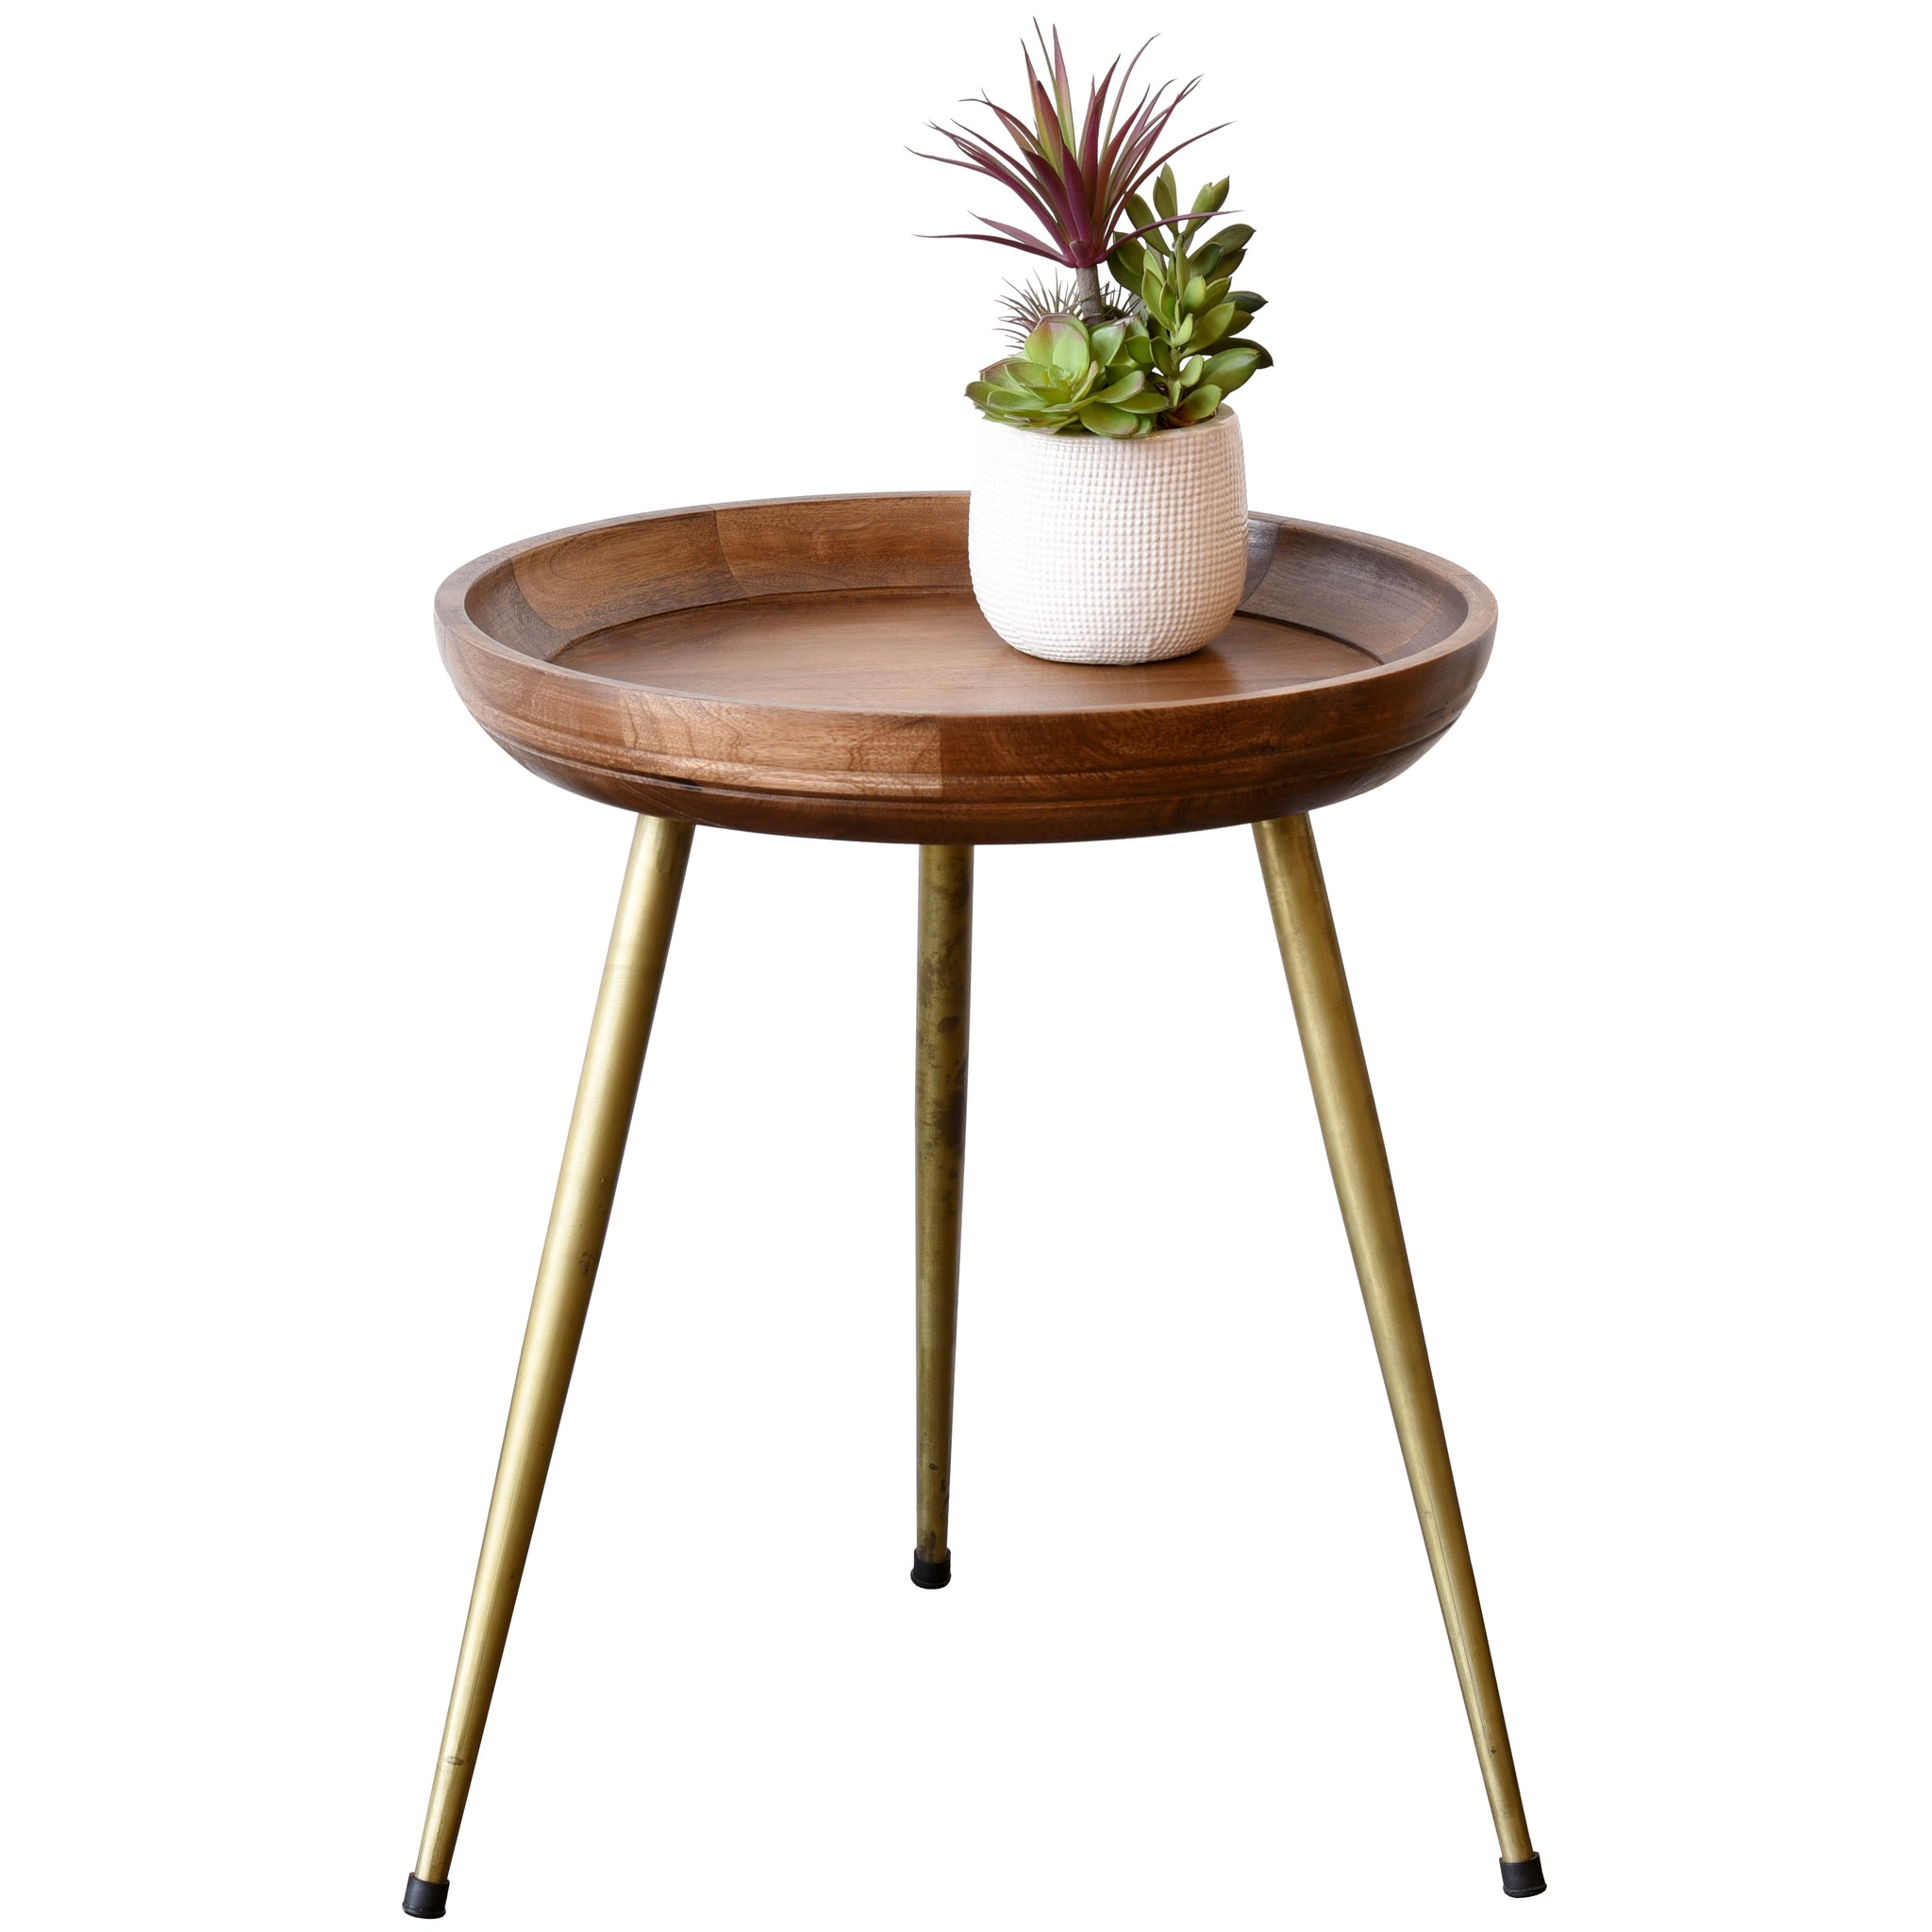 Round Mid Century Modern Retro Wood End Table With Brass Gold Legs